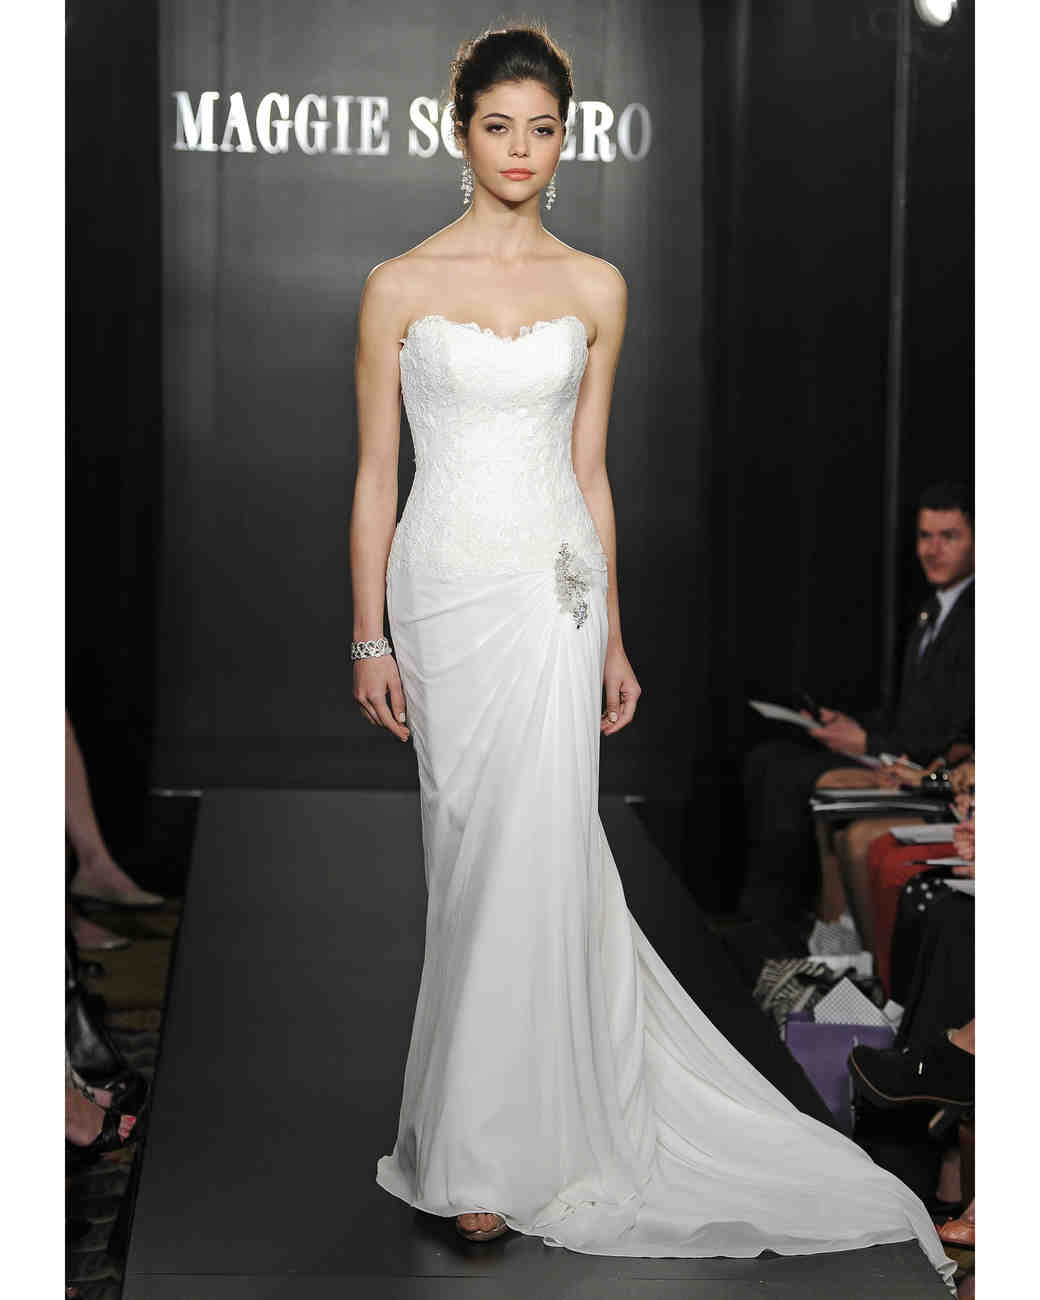 maggie-sottero-spring2013-wd108745-014.jpg